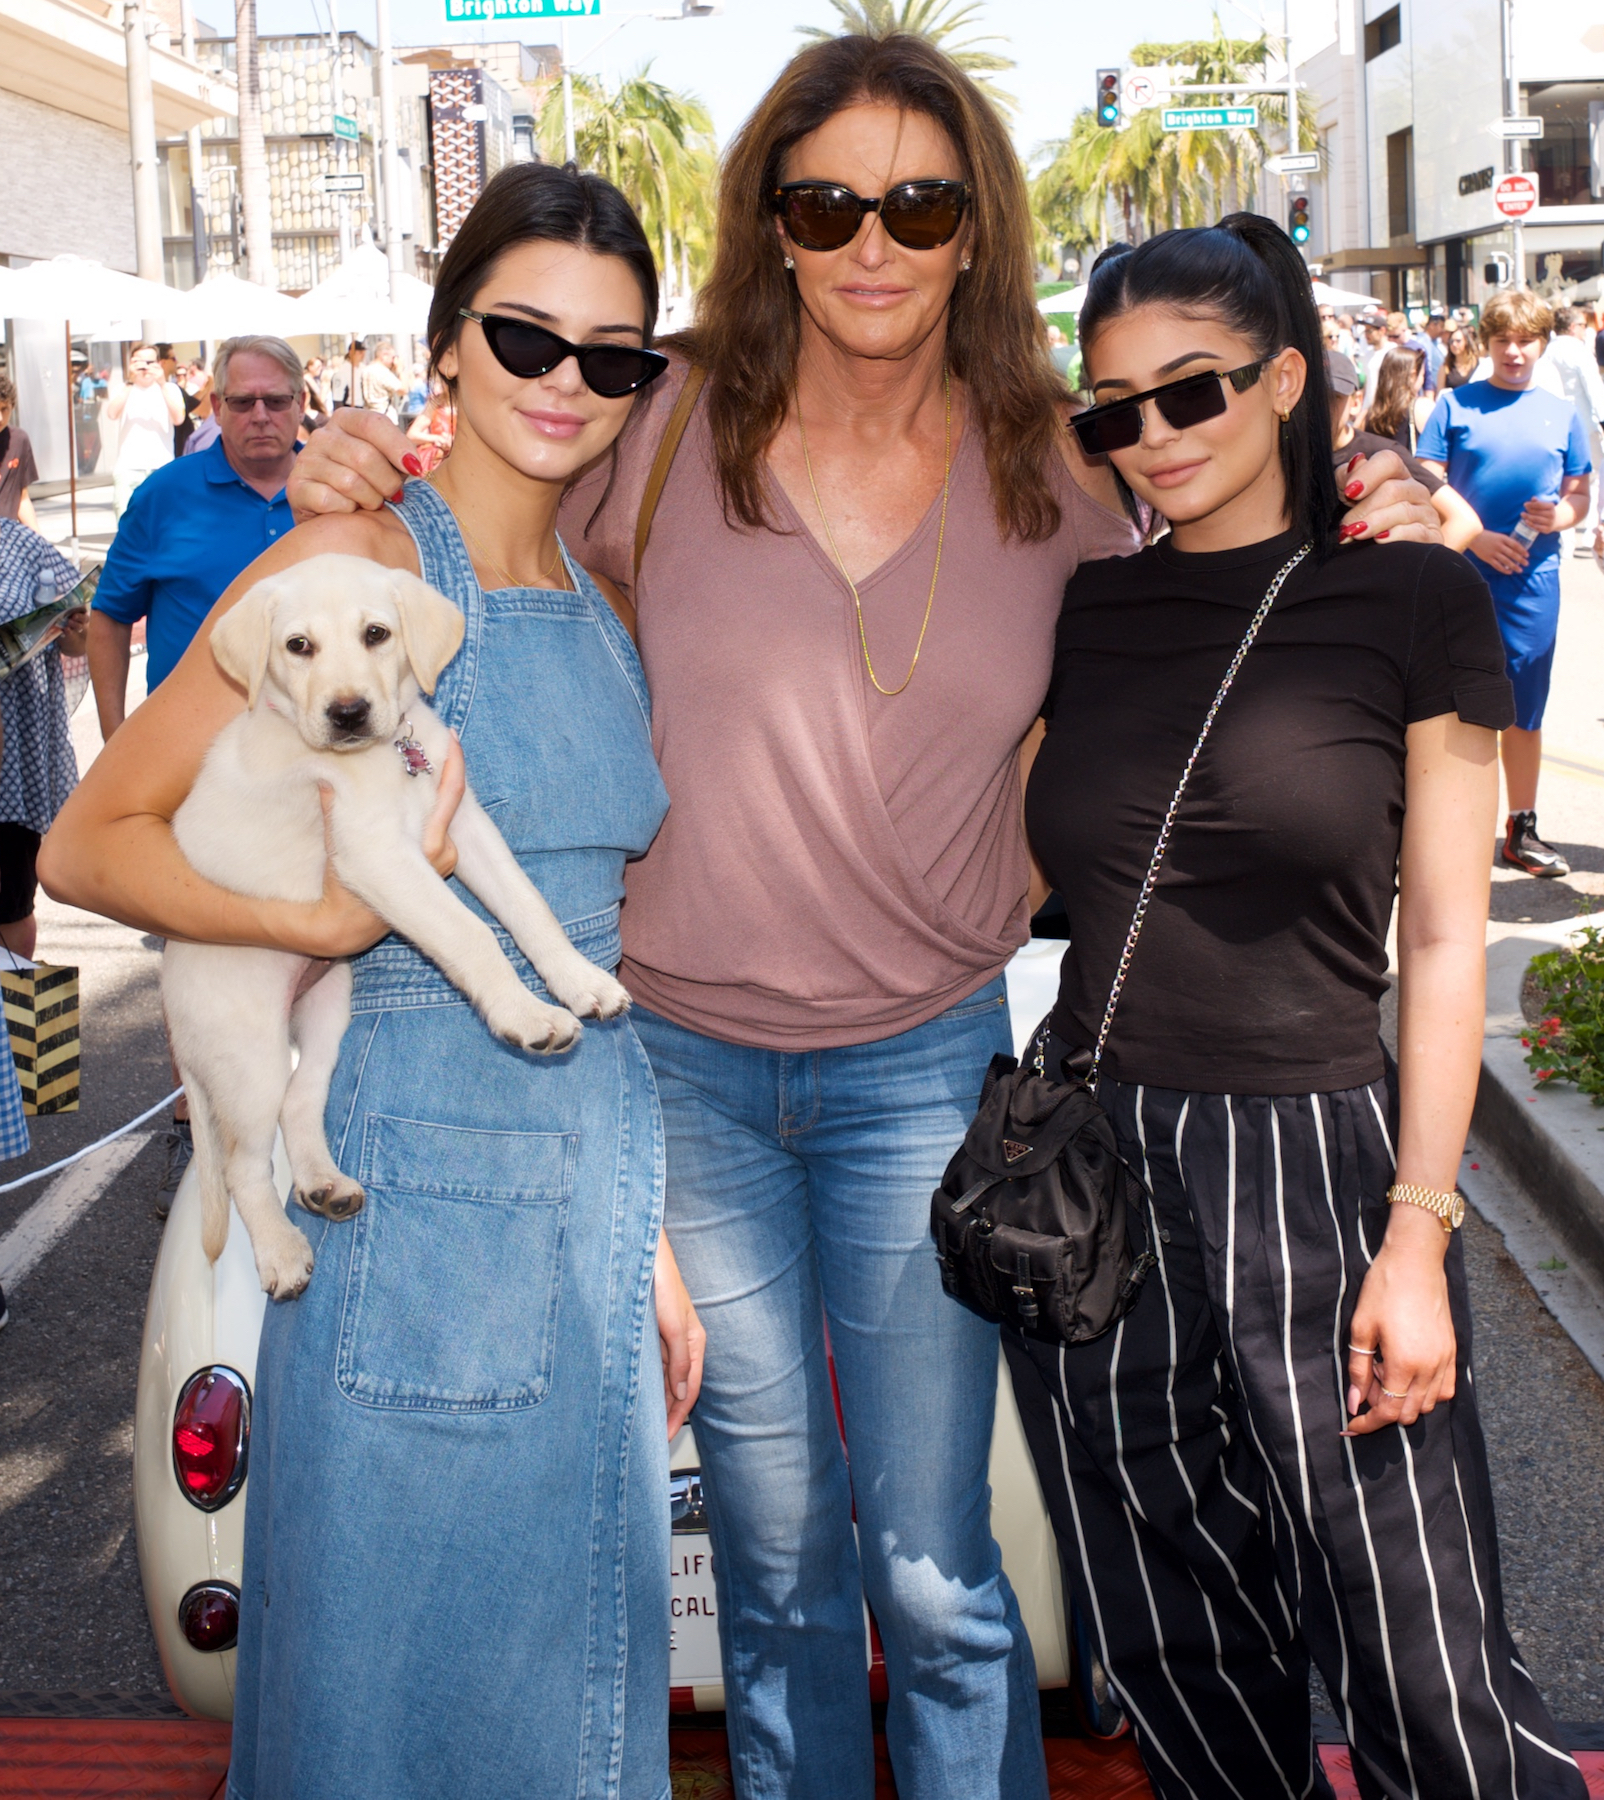 Caitlyn Jenner Spends Father's Day With Kendall and Kylie